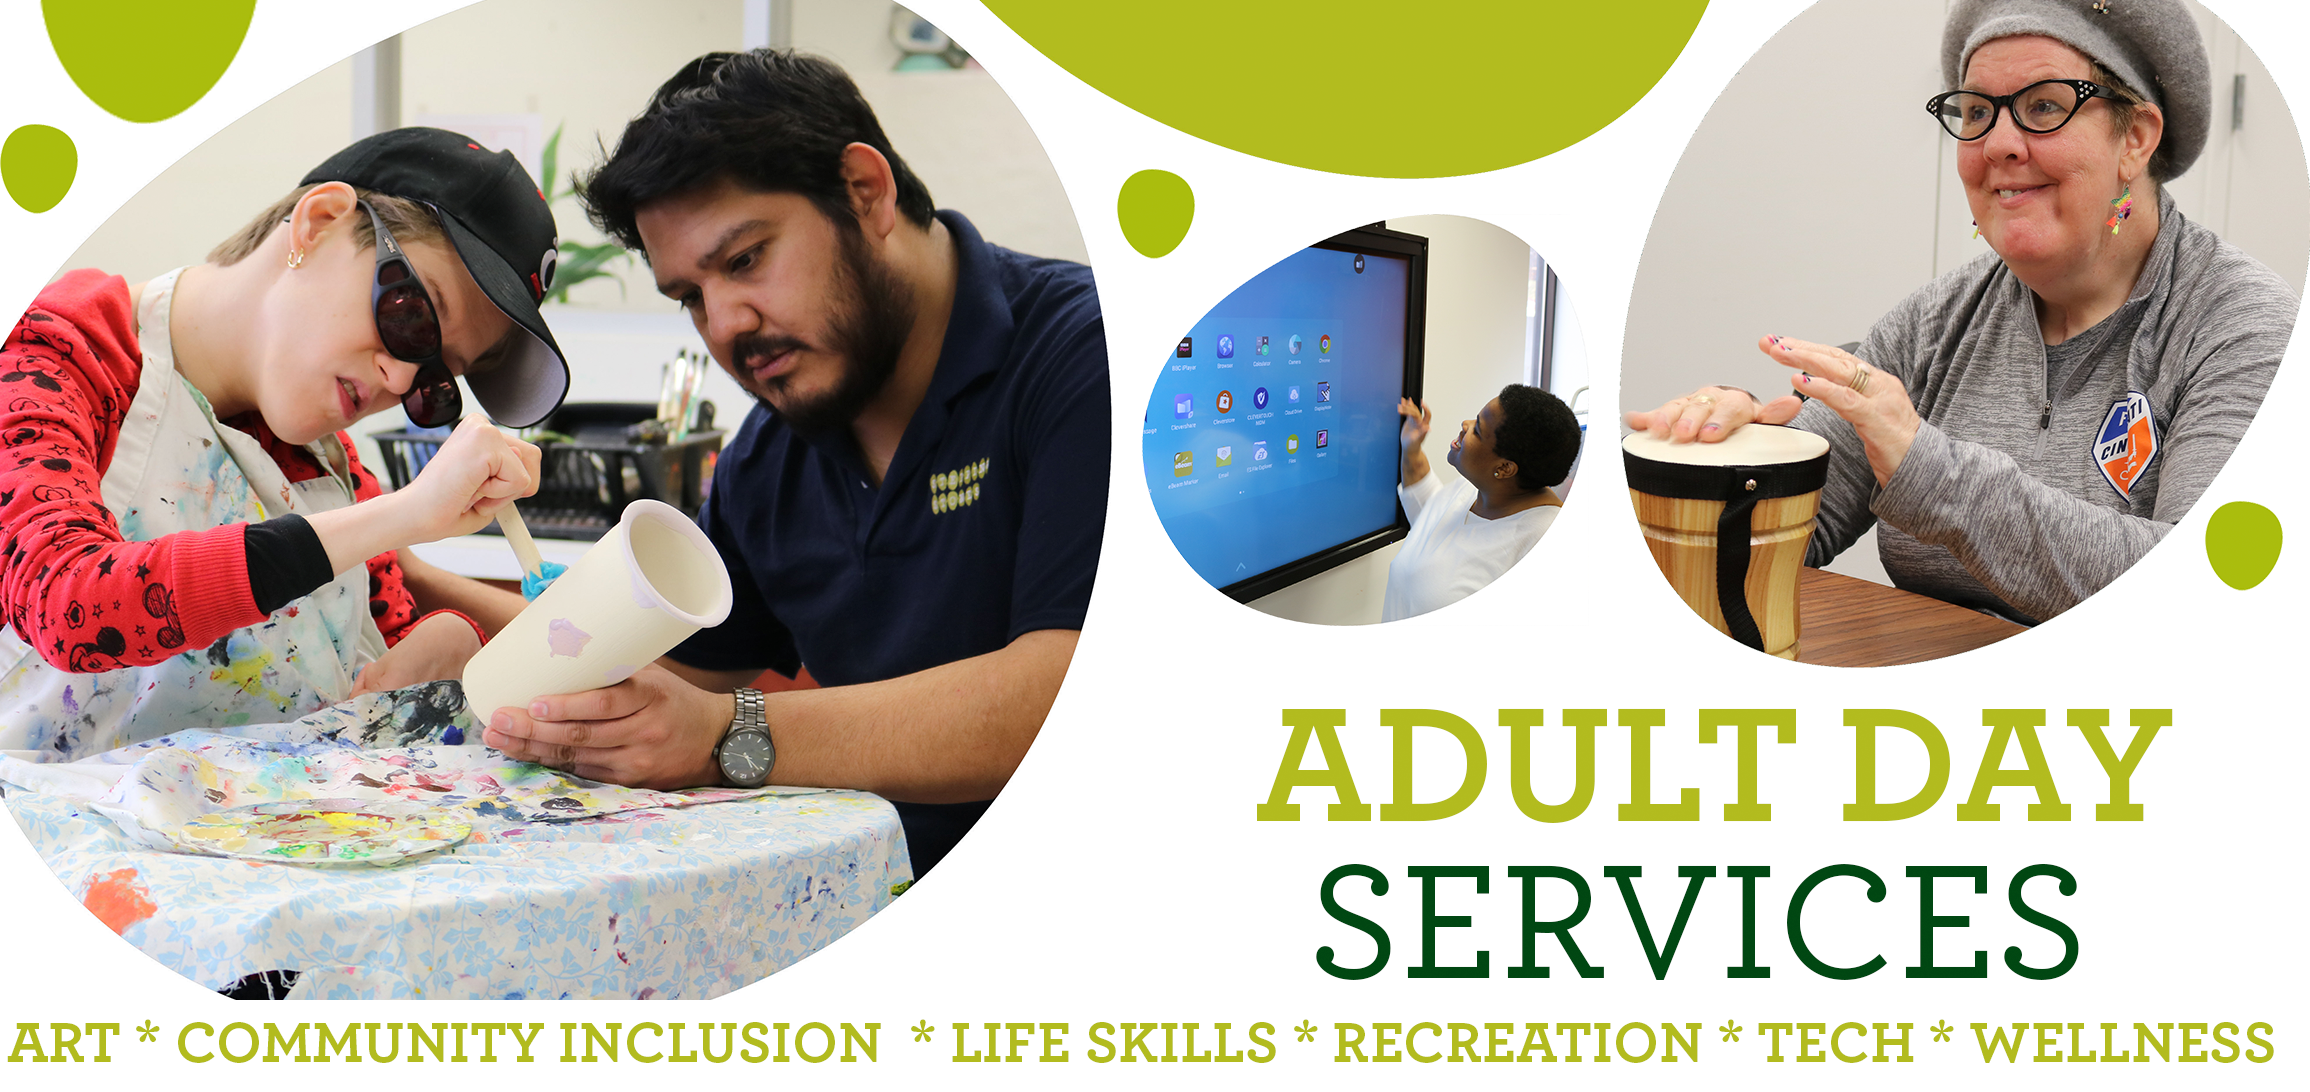 Stepping Stones Adult Day Services Program for Individuals with Disabilities I Greater Cincinnati